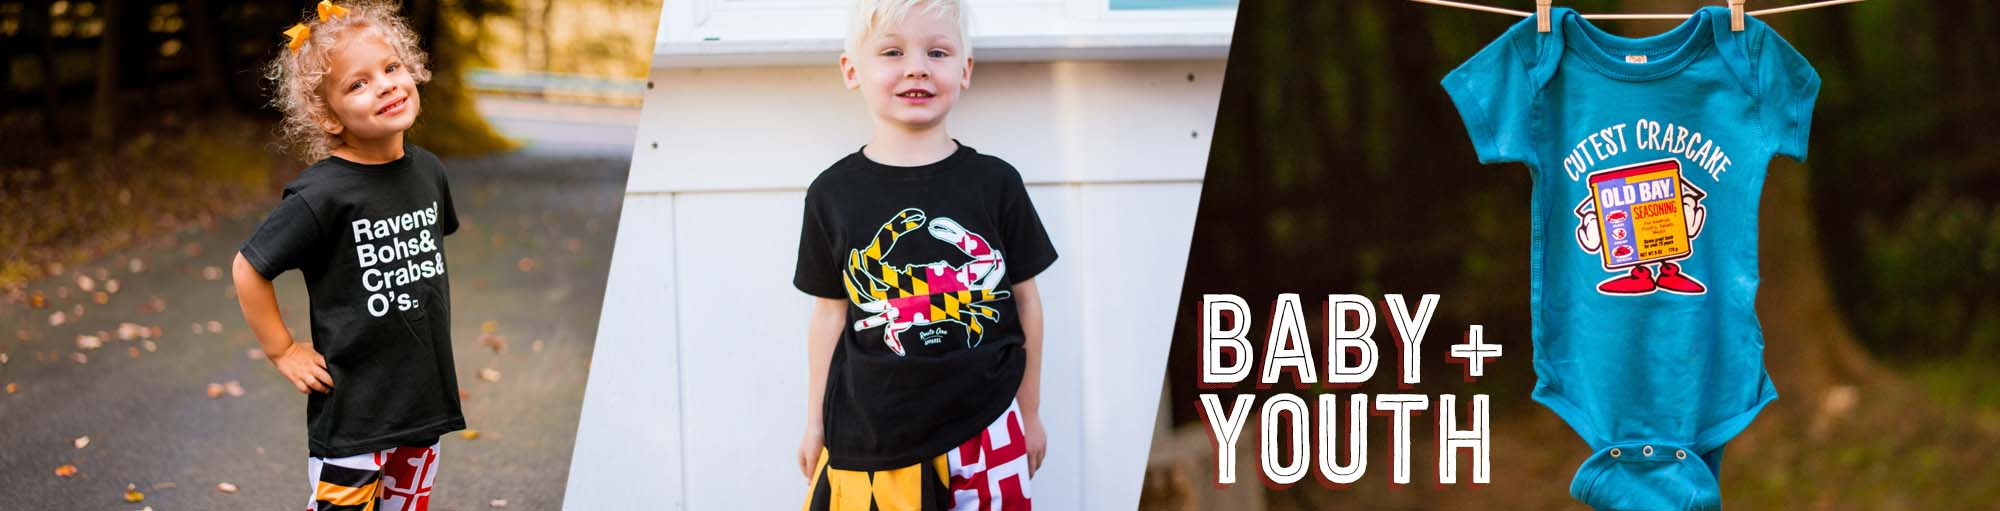 baa2c5536 Baby + Youth – Route One Apparel